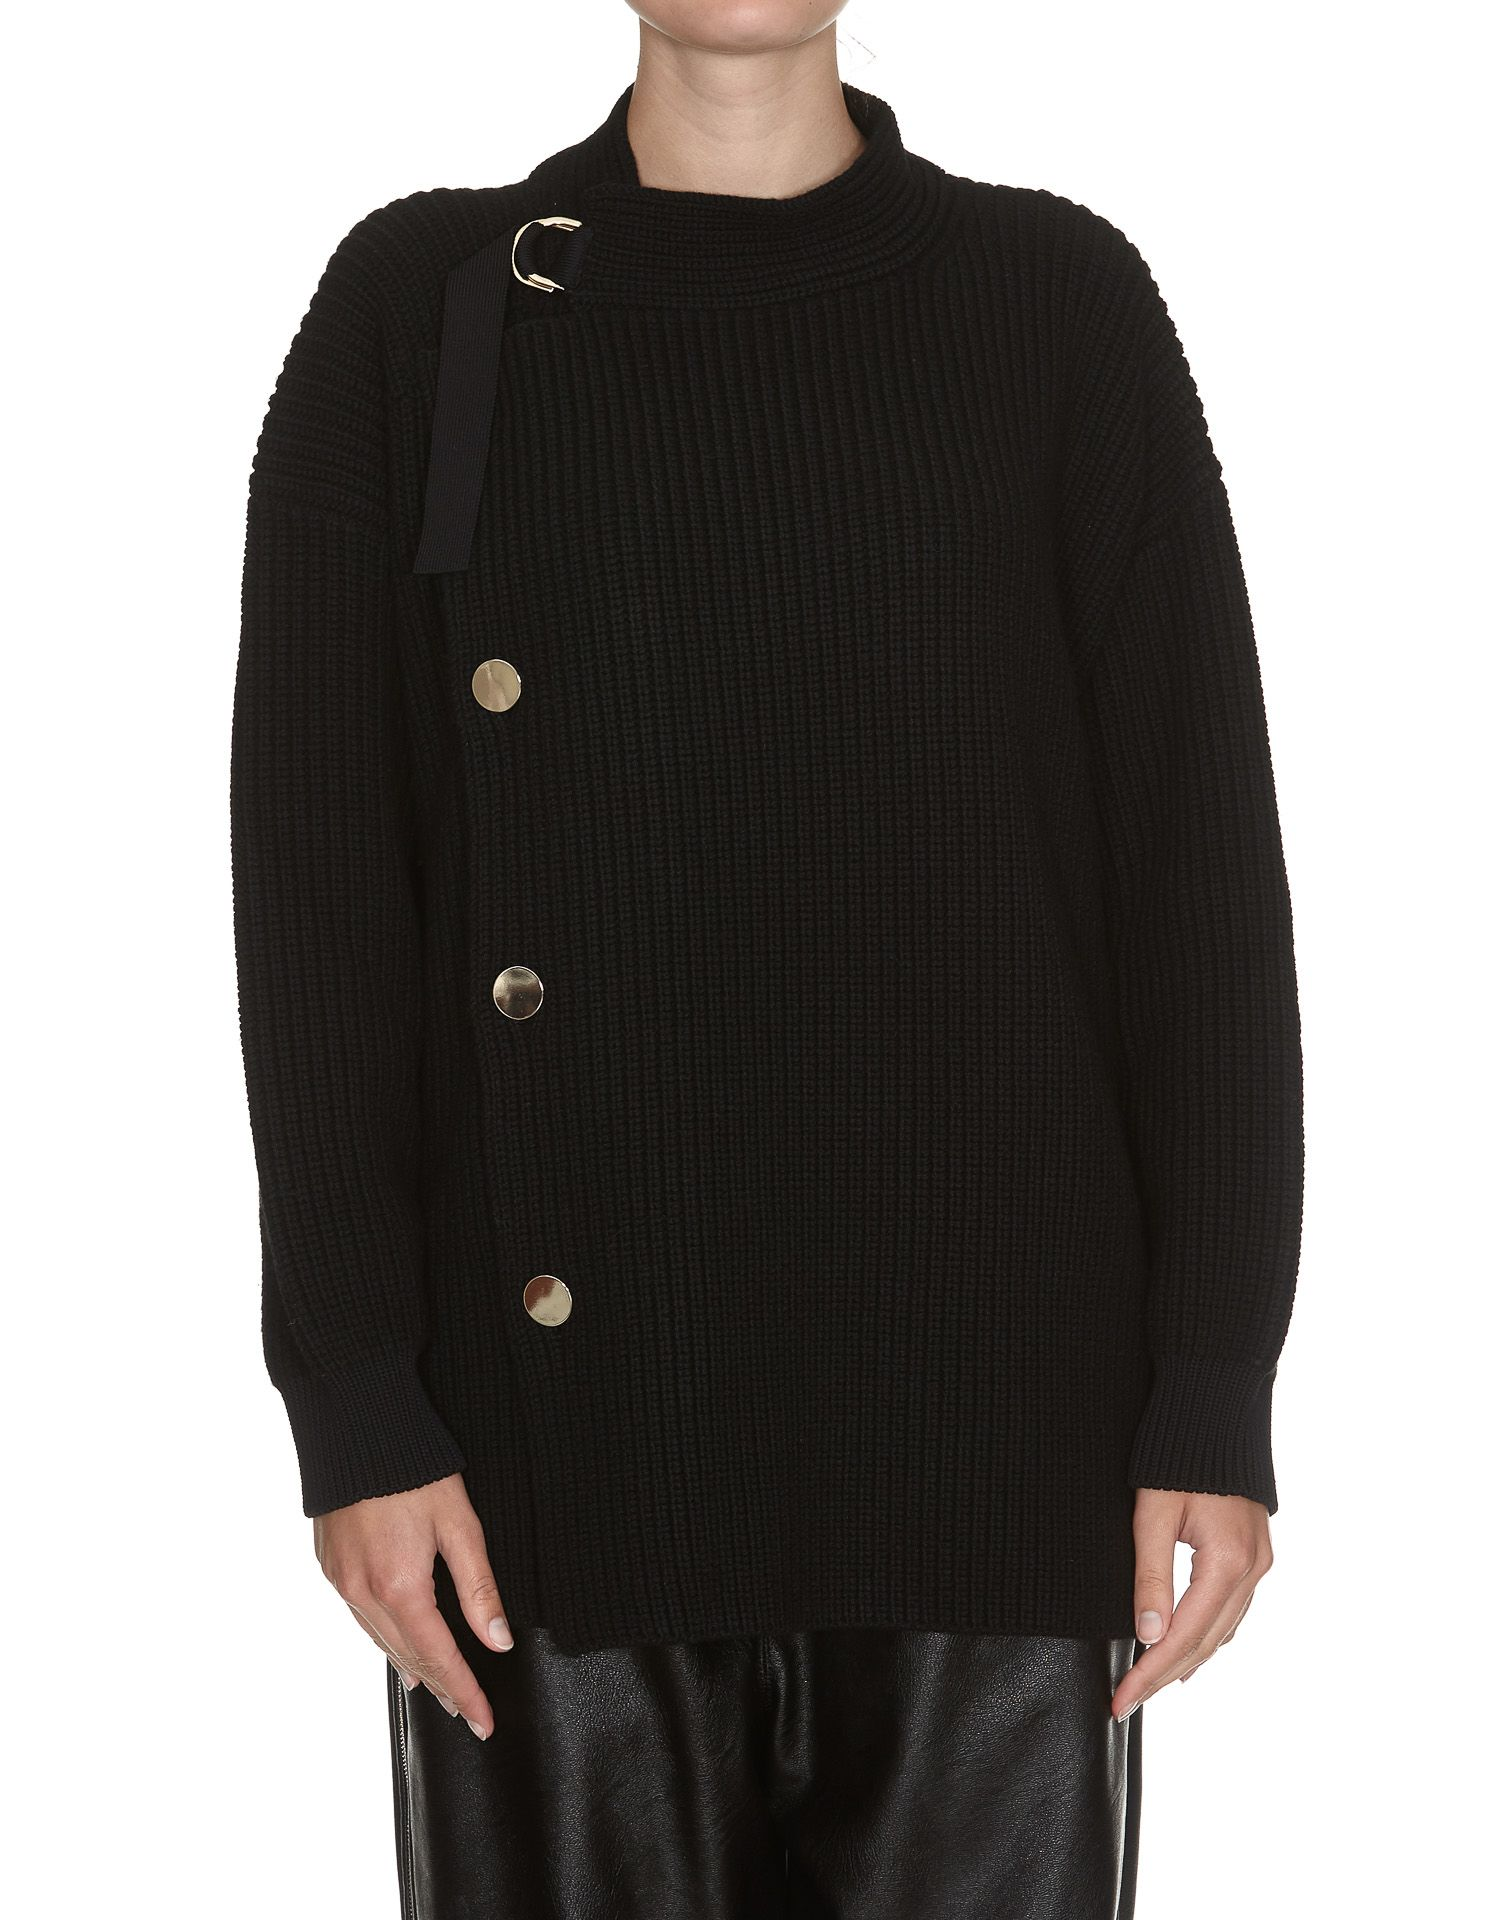 STELLA MCCARTNEY KNIT JACKET